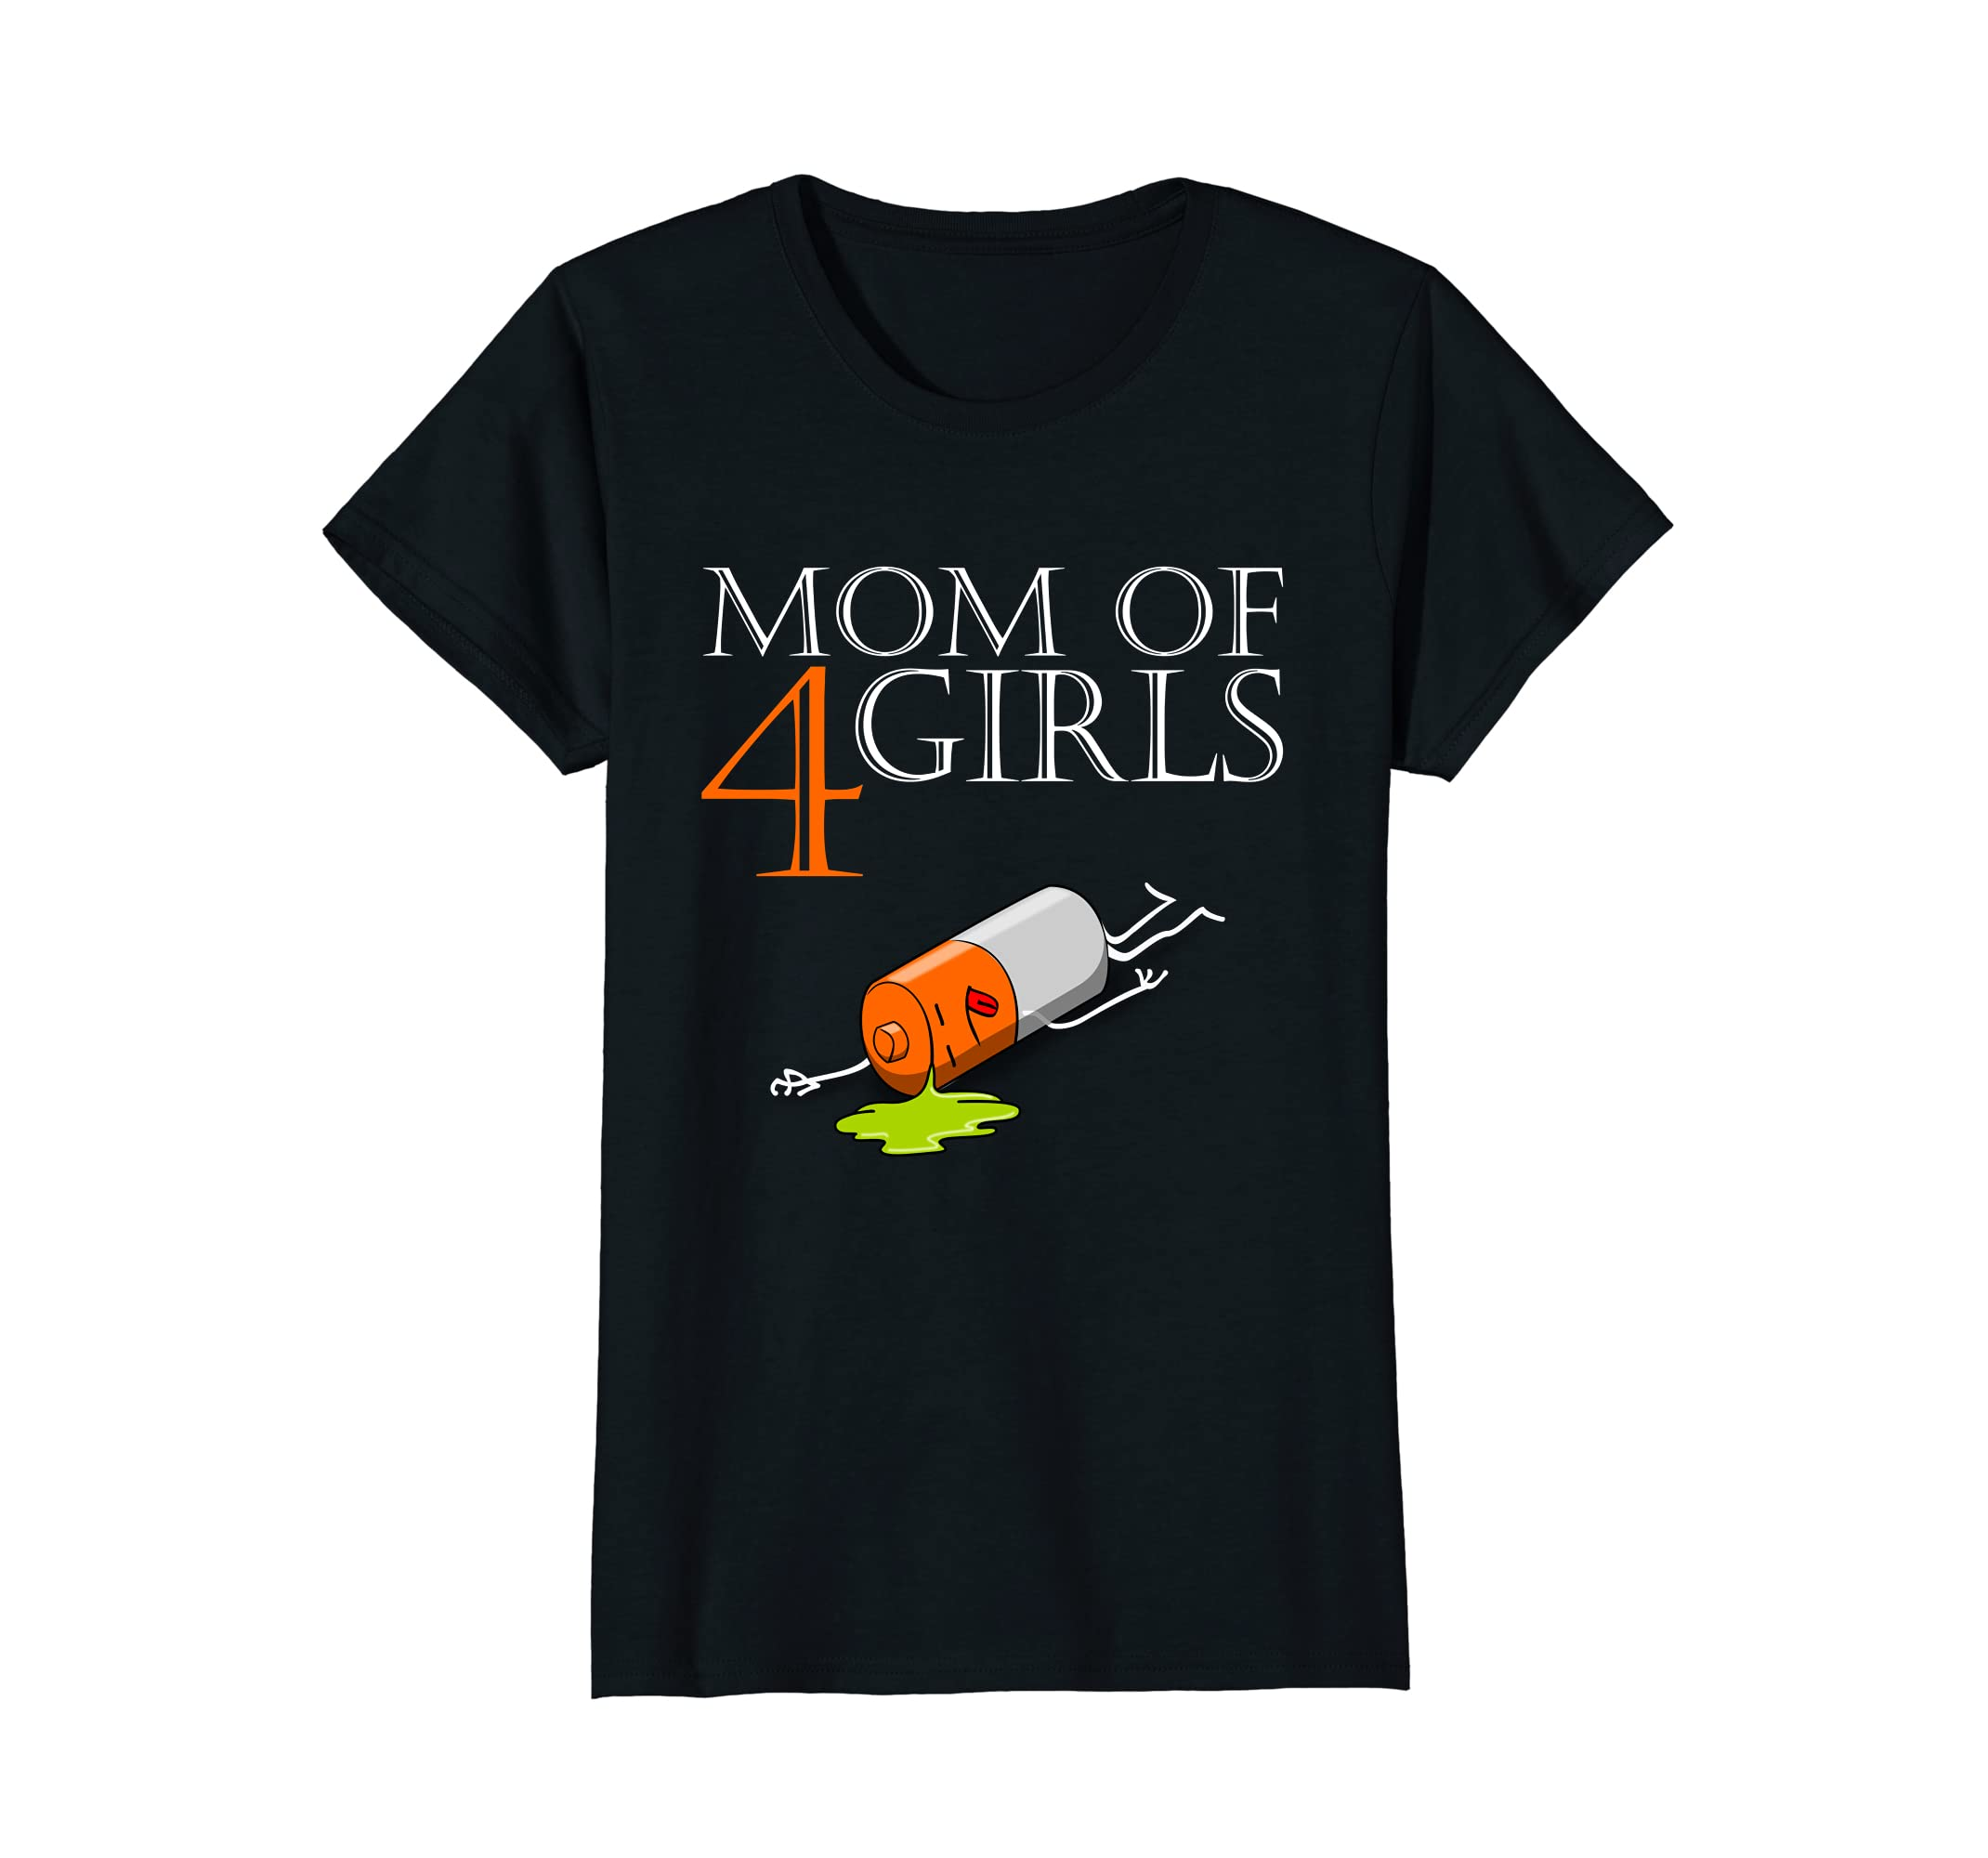 Womens mom of 4 girls - Funky Shirt for mothers with four daughters-ah my shirt one gift